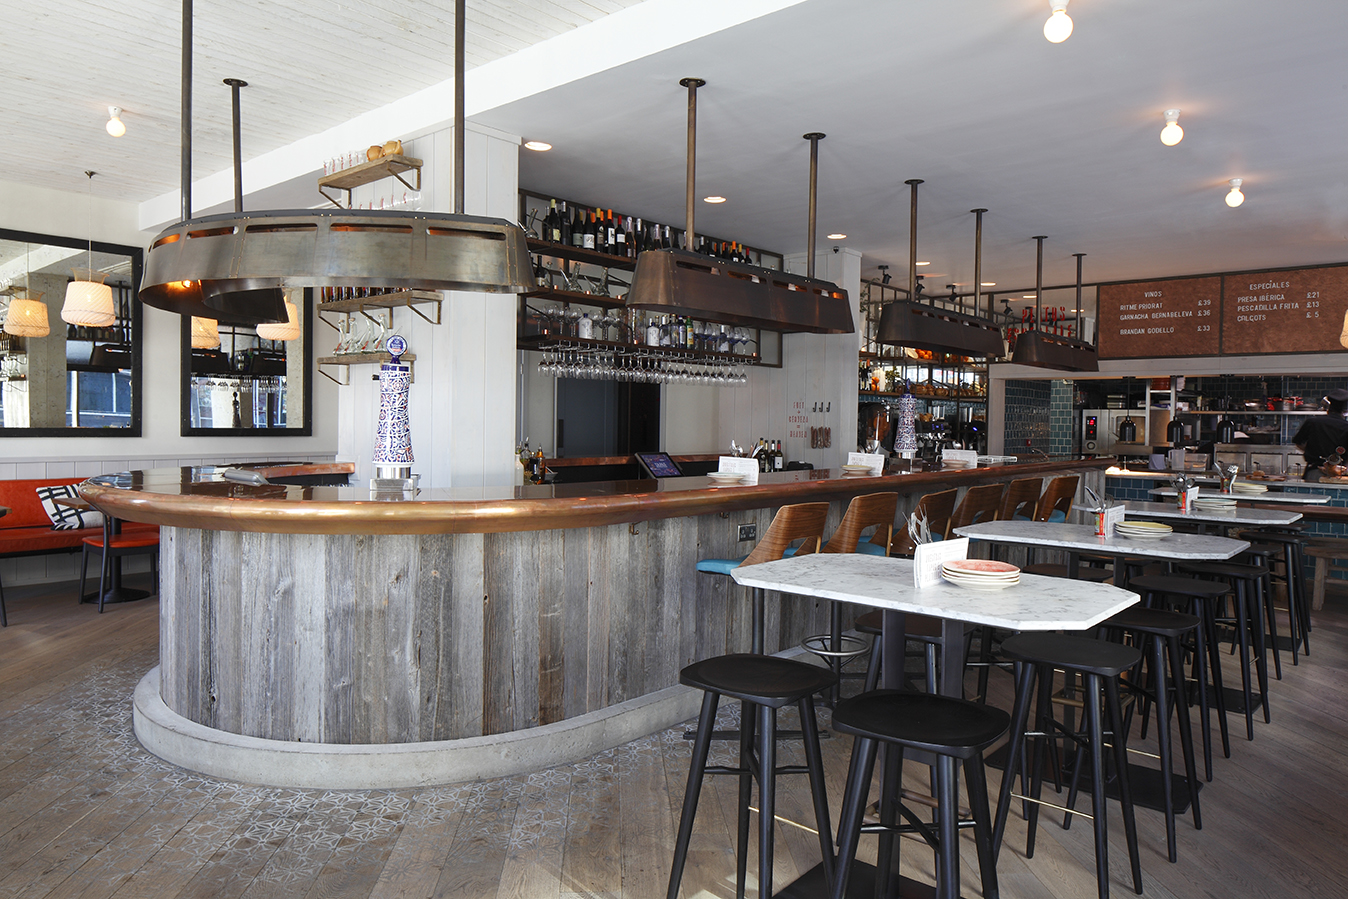 TAPAS REVOLUTION: Shoreditch Shared Dining. This ... Photo Gallery